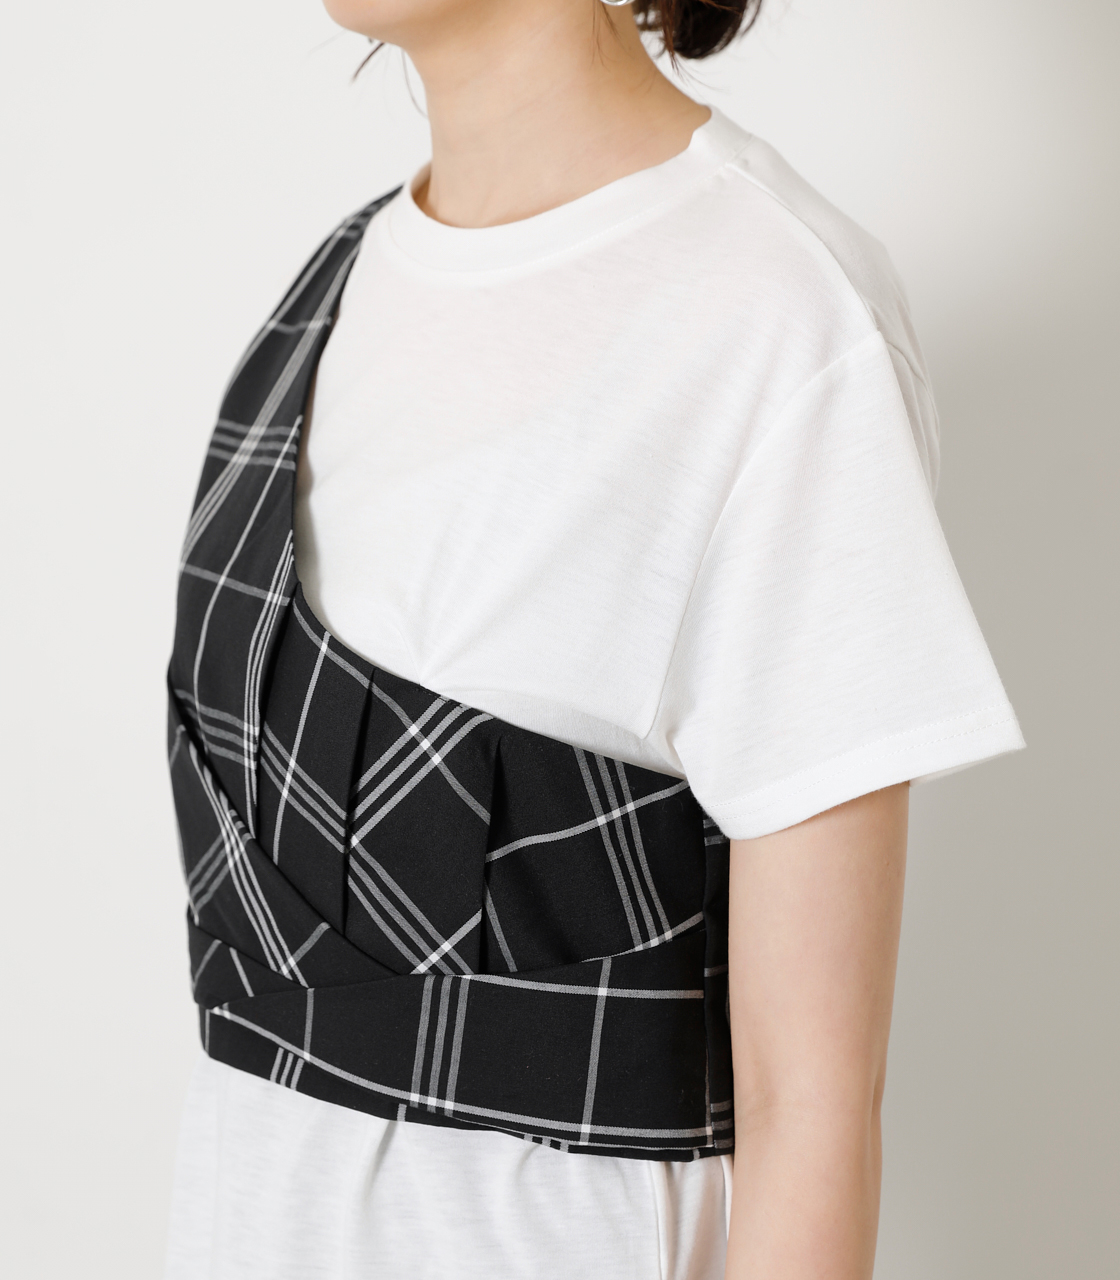 ONESHOULDER CHECK BUSTIER TOPS/ワンショルダーチェックビジタートップス 詳細画像 柄BLK 7